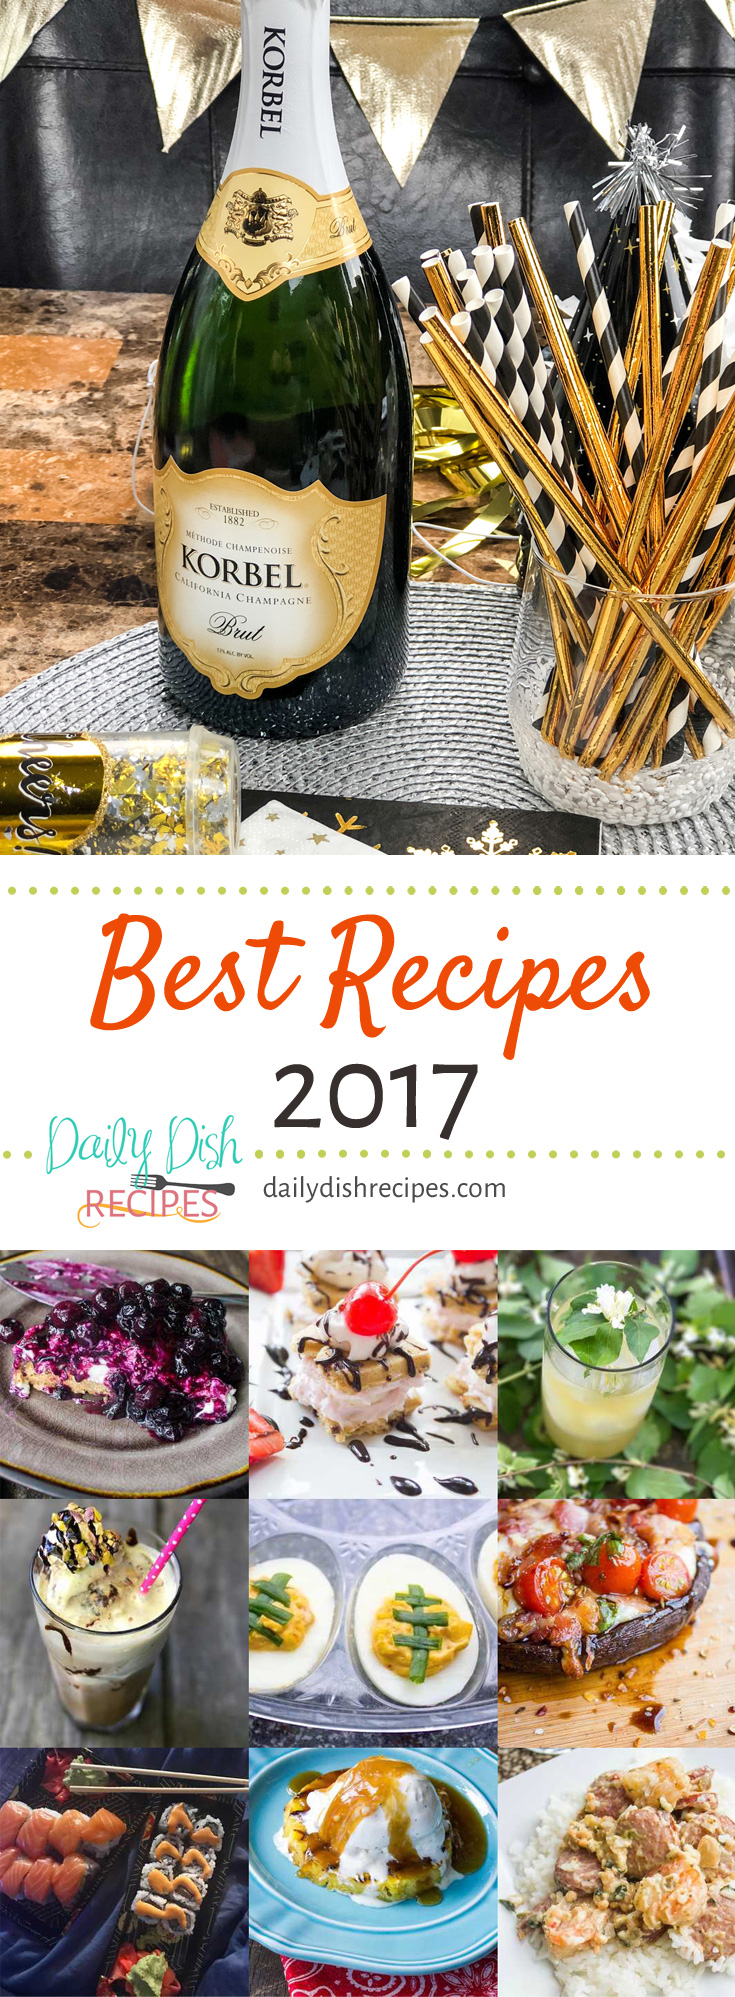 The best part of the end of the year for a food blogger is digging through analytics and seeing which were the best recipes, top recipes and favorite recipes among their readers. This is the best recipes of 2017 from Daily Dish Recipes